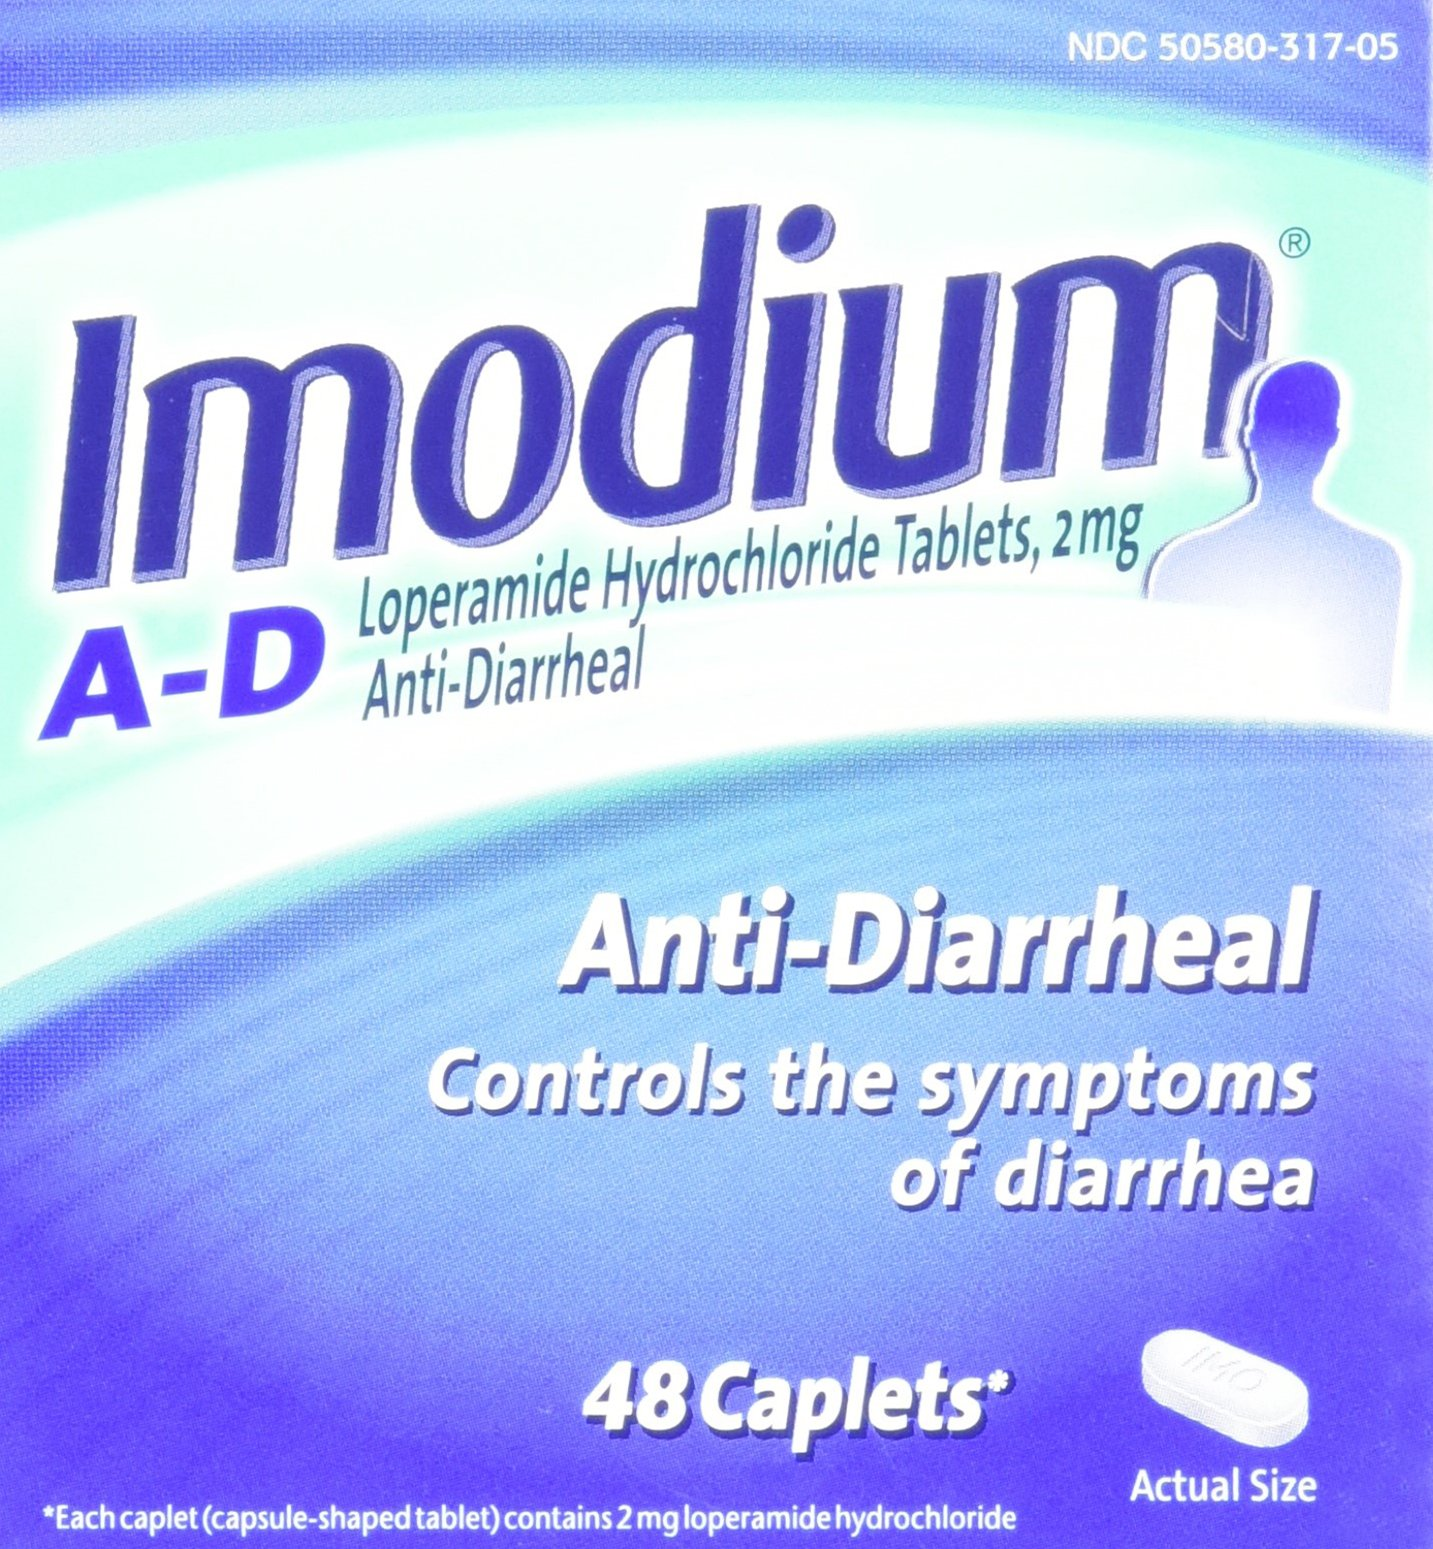 Imodium A-D Diarrhea Relief Caplets, 48 count, 2 mg by Imodium